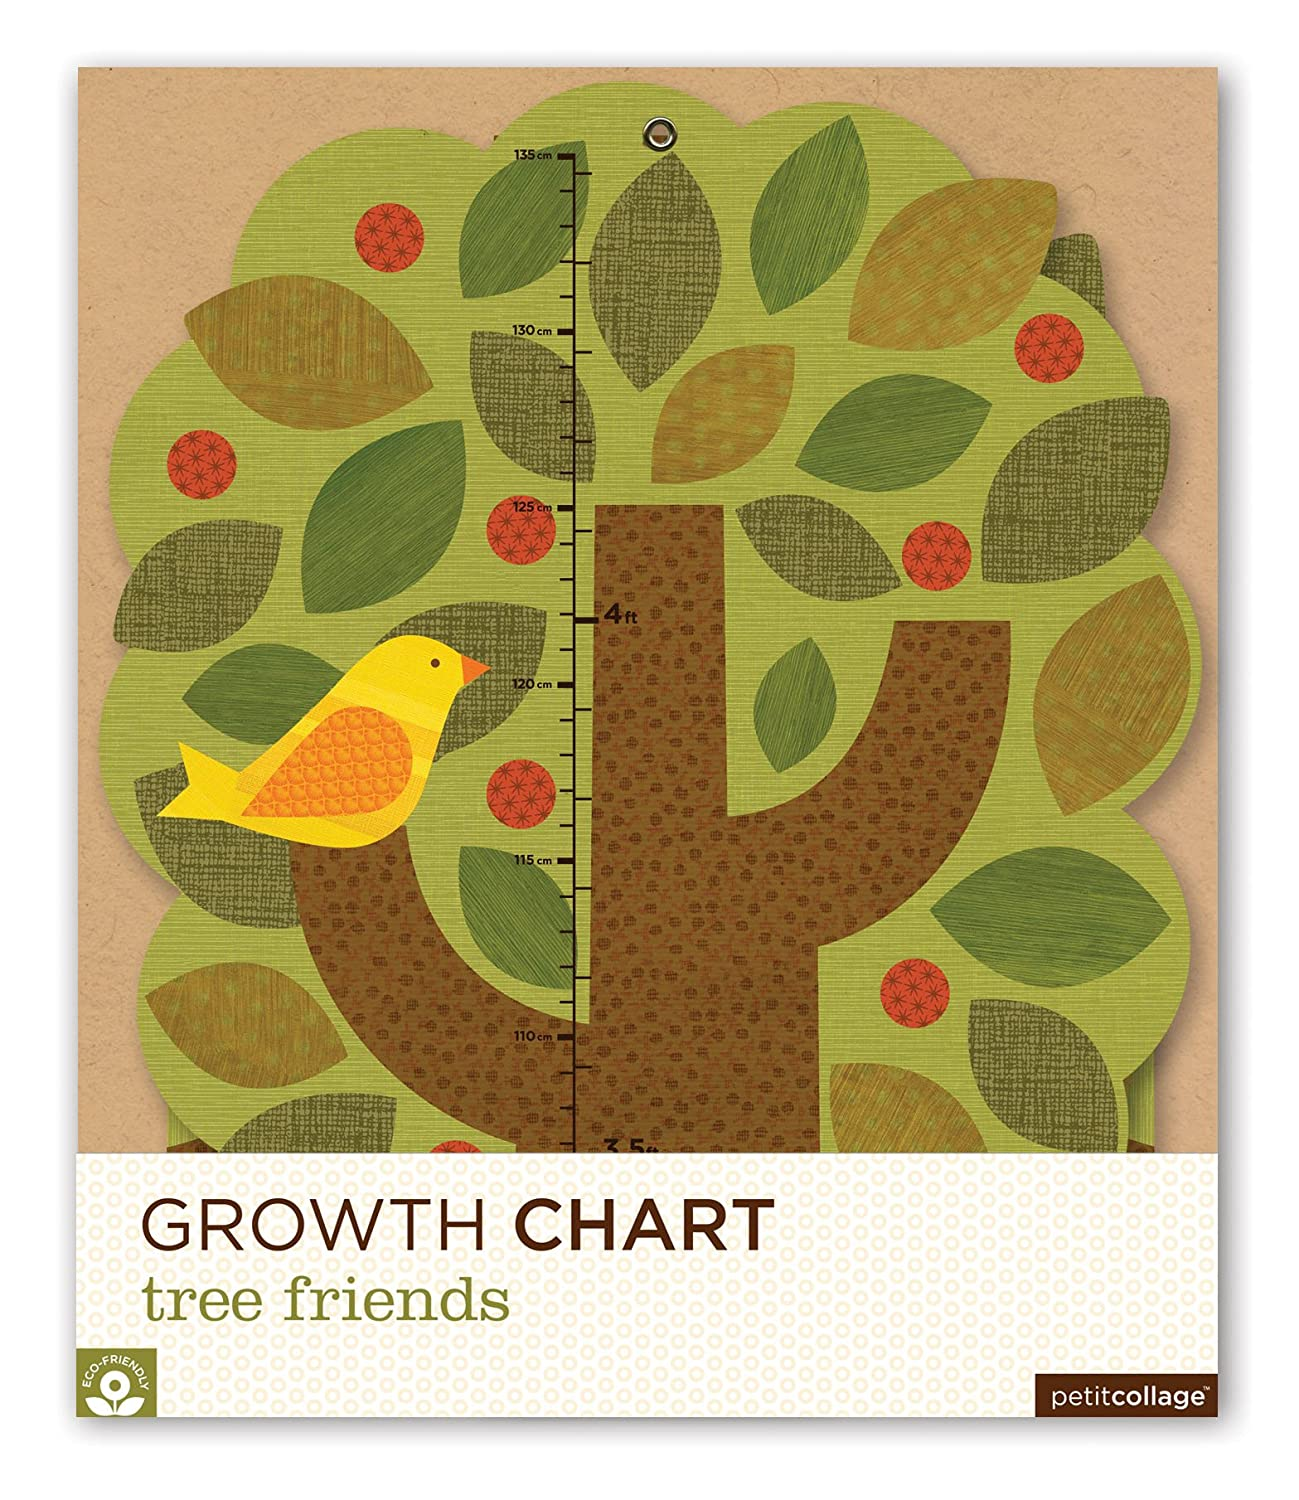 Amazon Petit Collage Folding Growth Chart Tree Friends